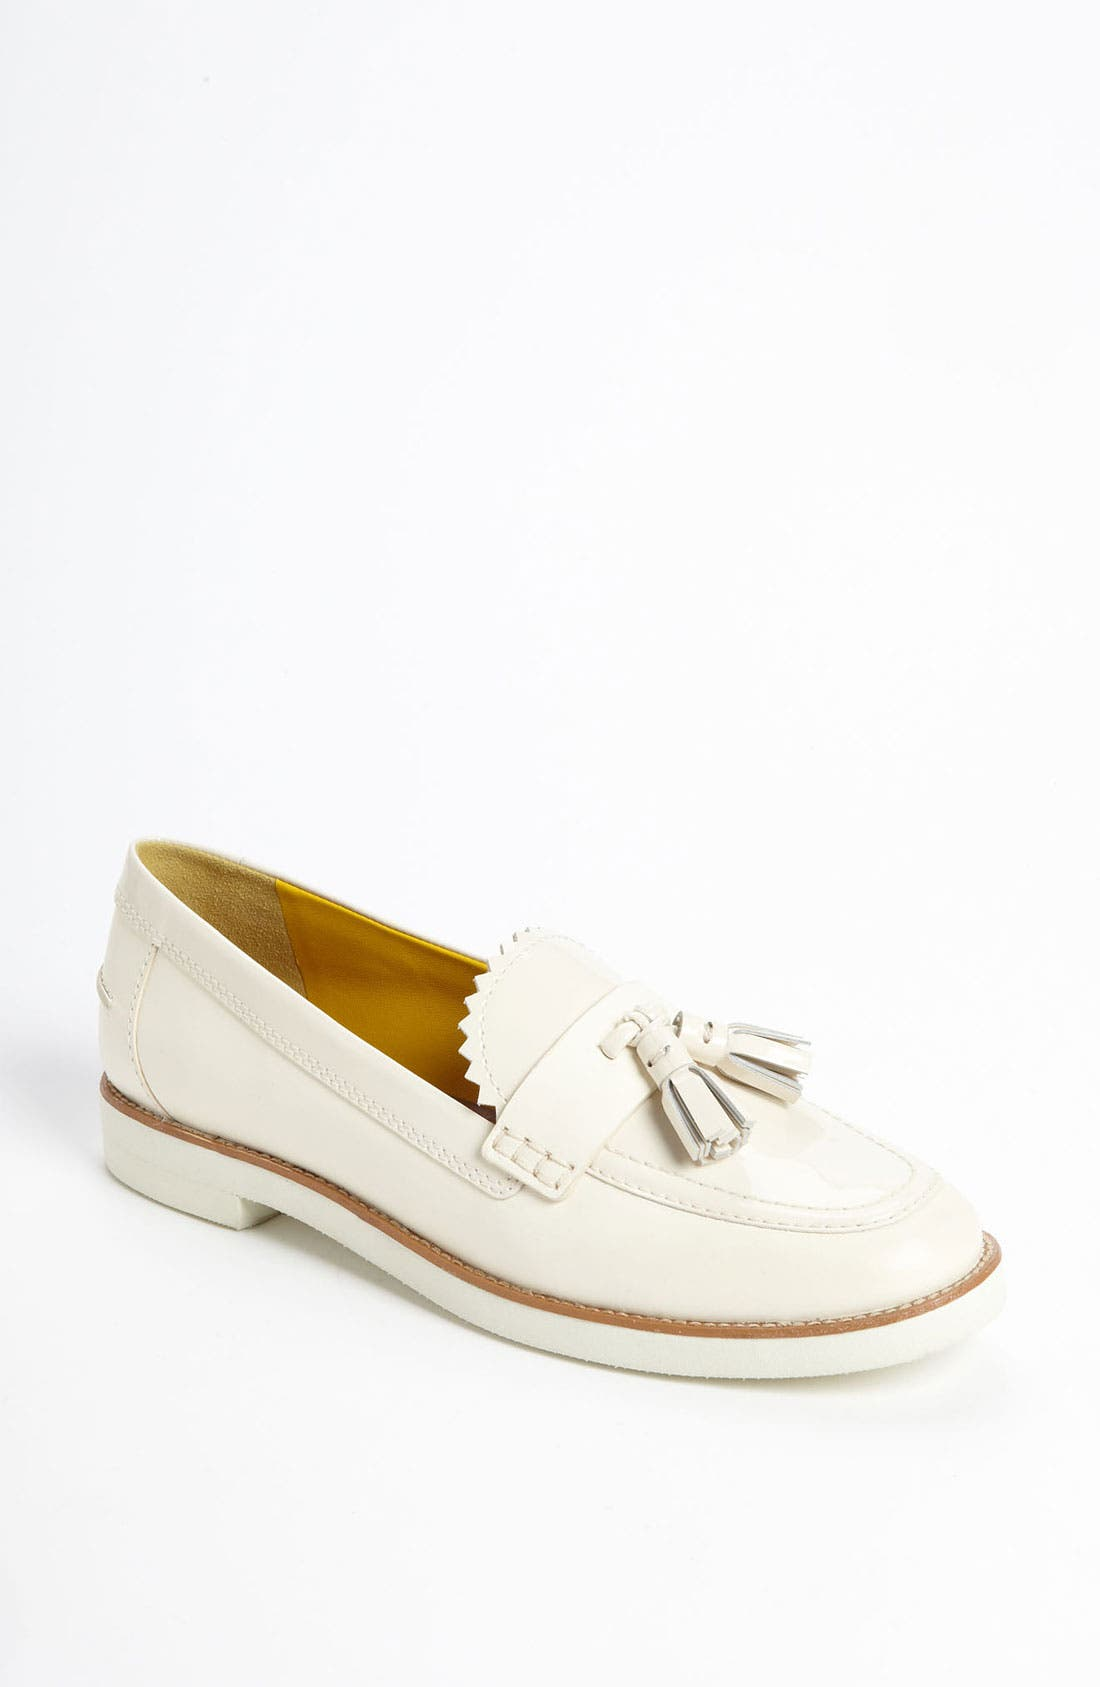 Main Image - Tory Burch 'Careen' Loafer